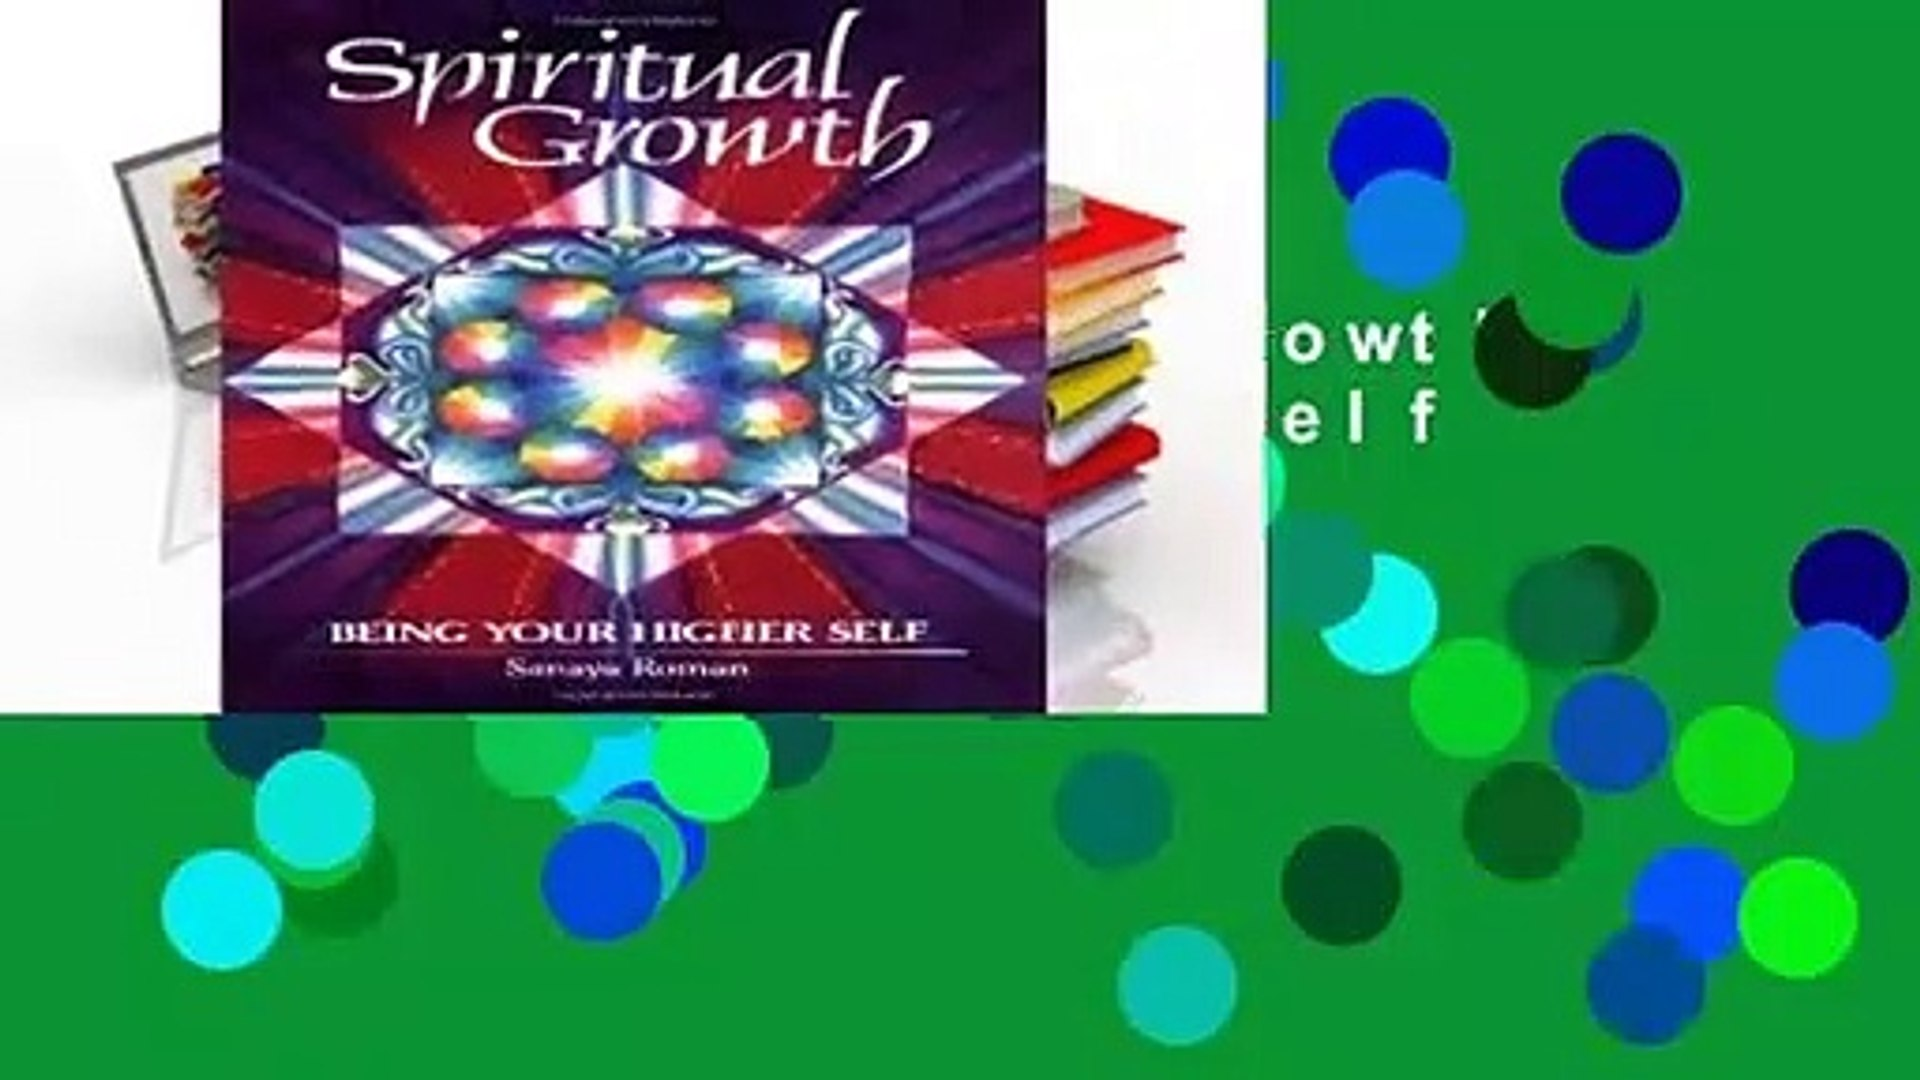 [READ] Spiritual Growth: Being Your Higher Self (Earth life)